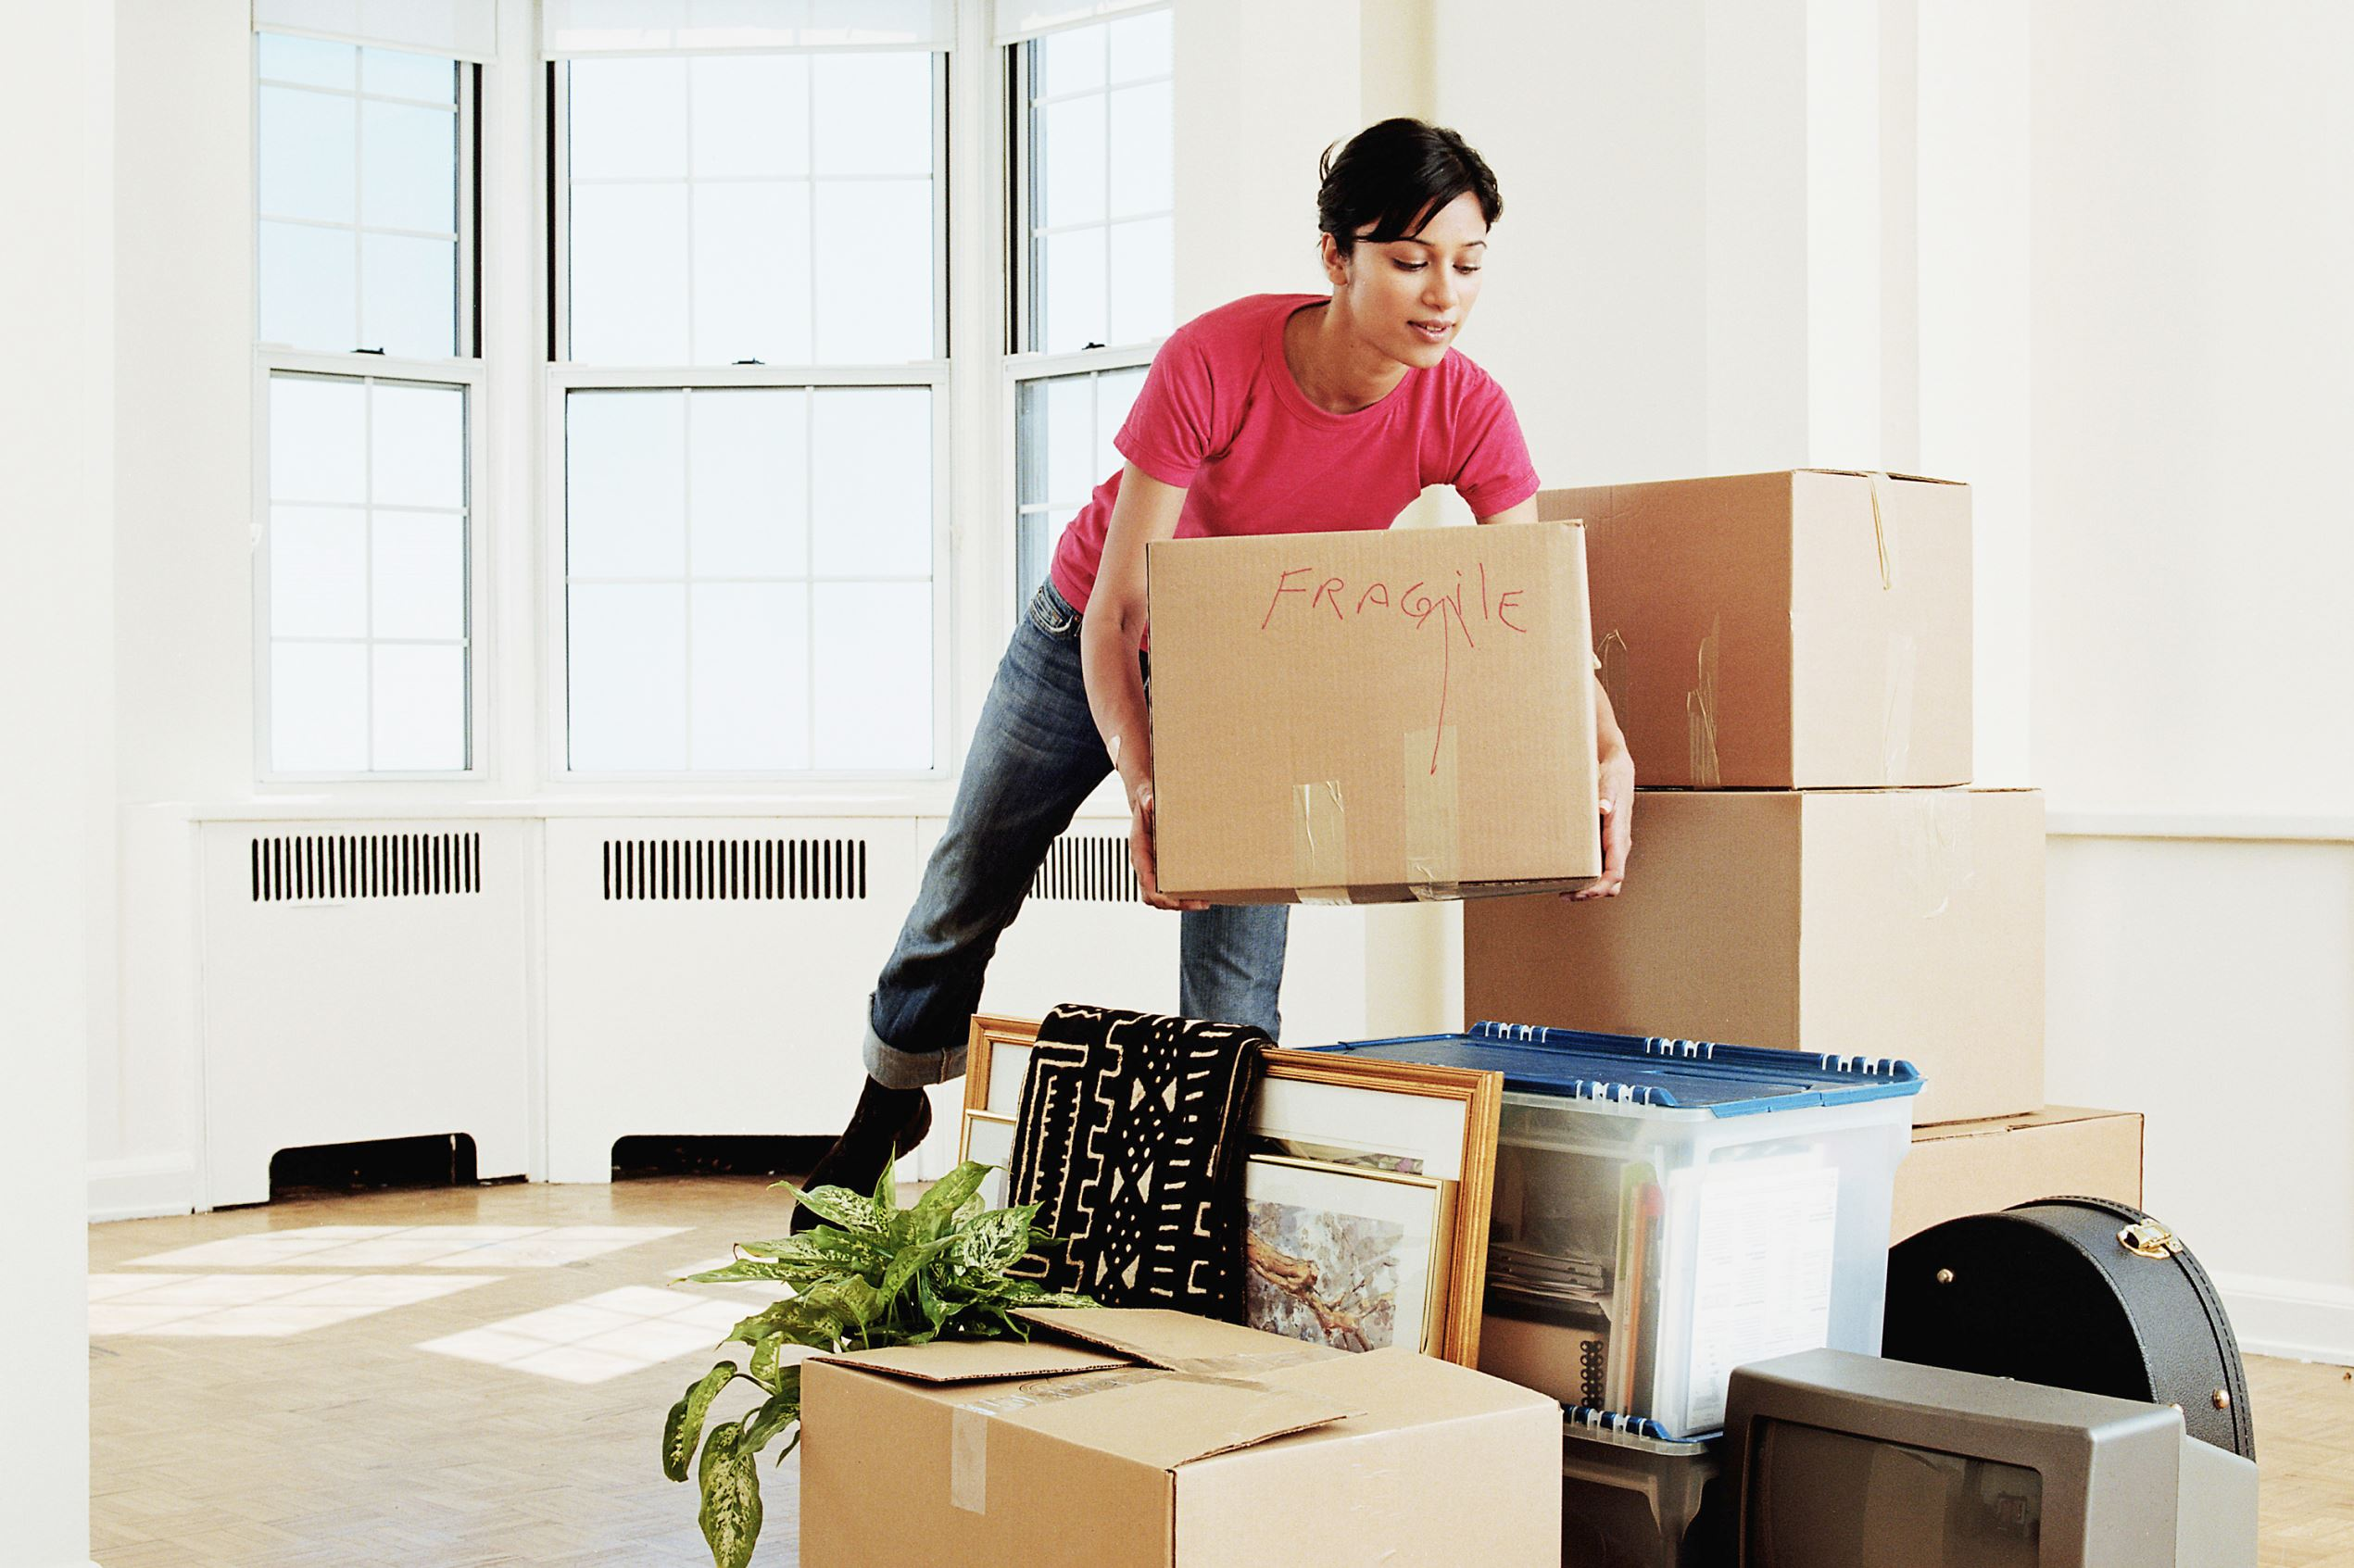 It is possible moving to another town would put you in line for a homebuyer assistance program that is not available to you now.